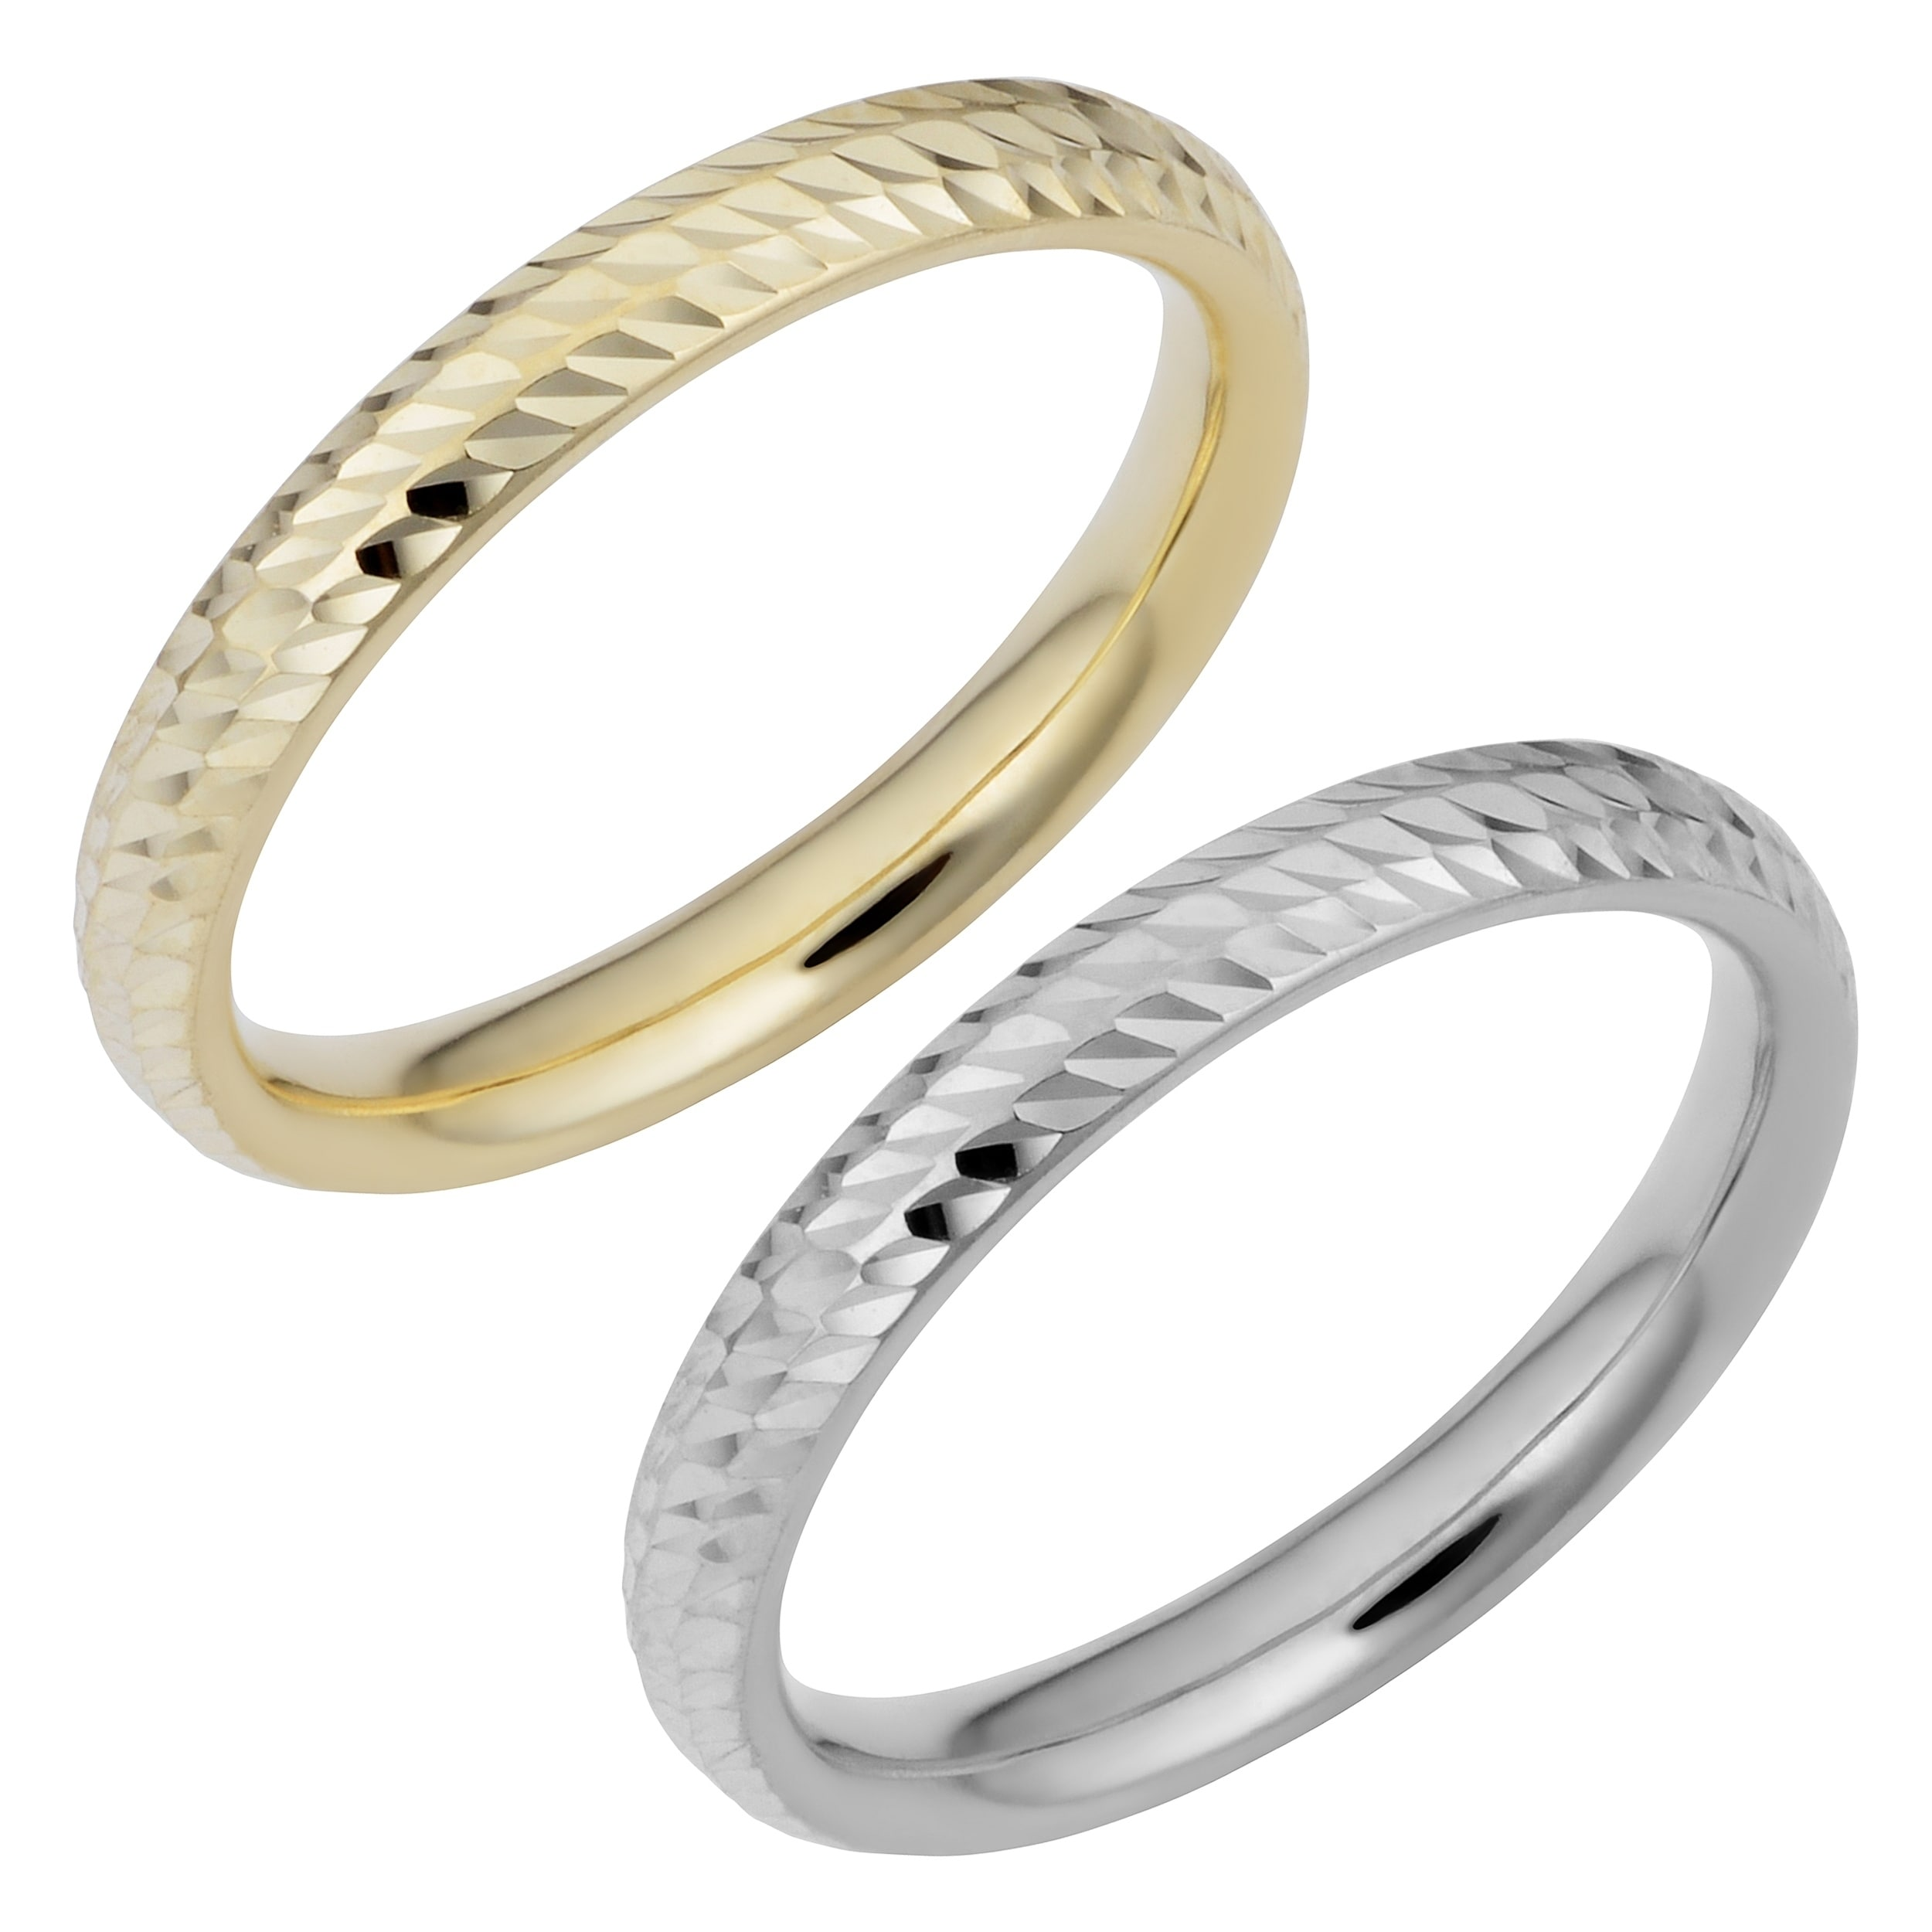 be to first recently years chupi mens enquiries adding gold band solid design re collection men s blog cufflinks mensweddingbands jewellery new bands announced our form unique we the wedding in of now after delighted